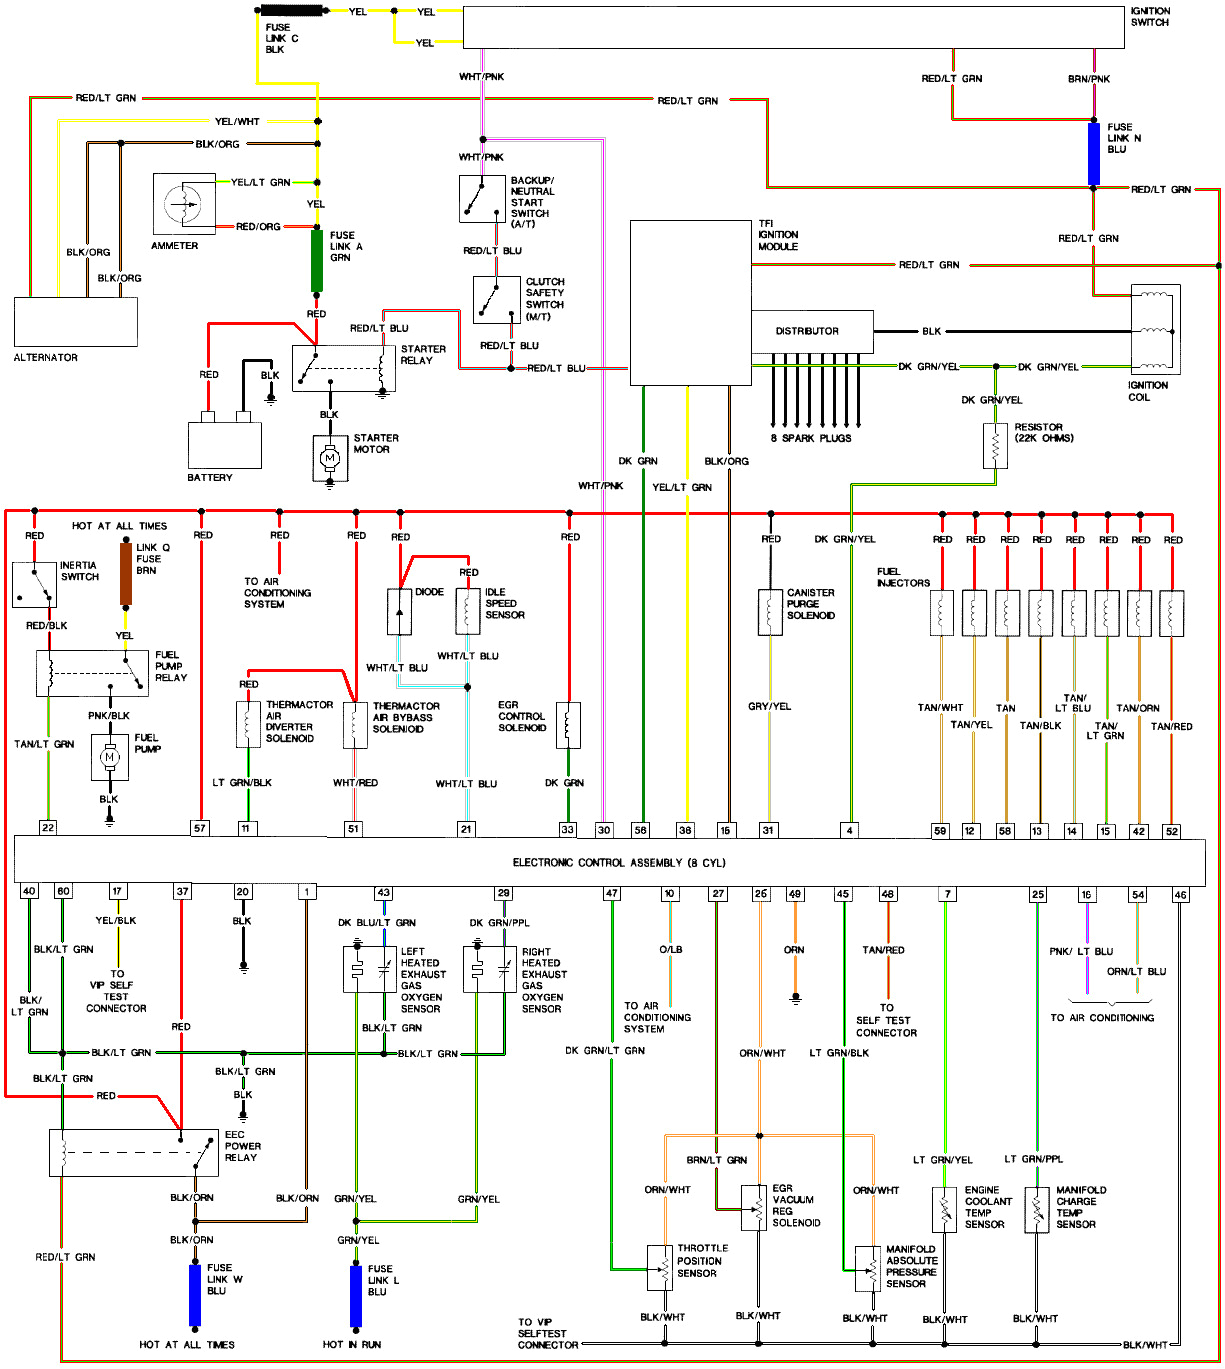 1987 Mustang Wiring Diagram 87 Mustang 5 0 Wiring Diagram Wiring Diagram Compilation